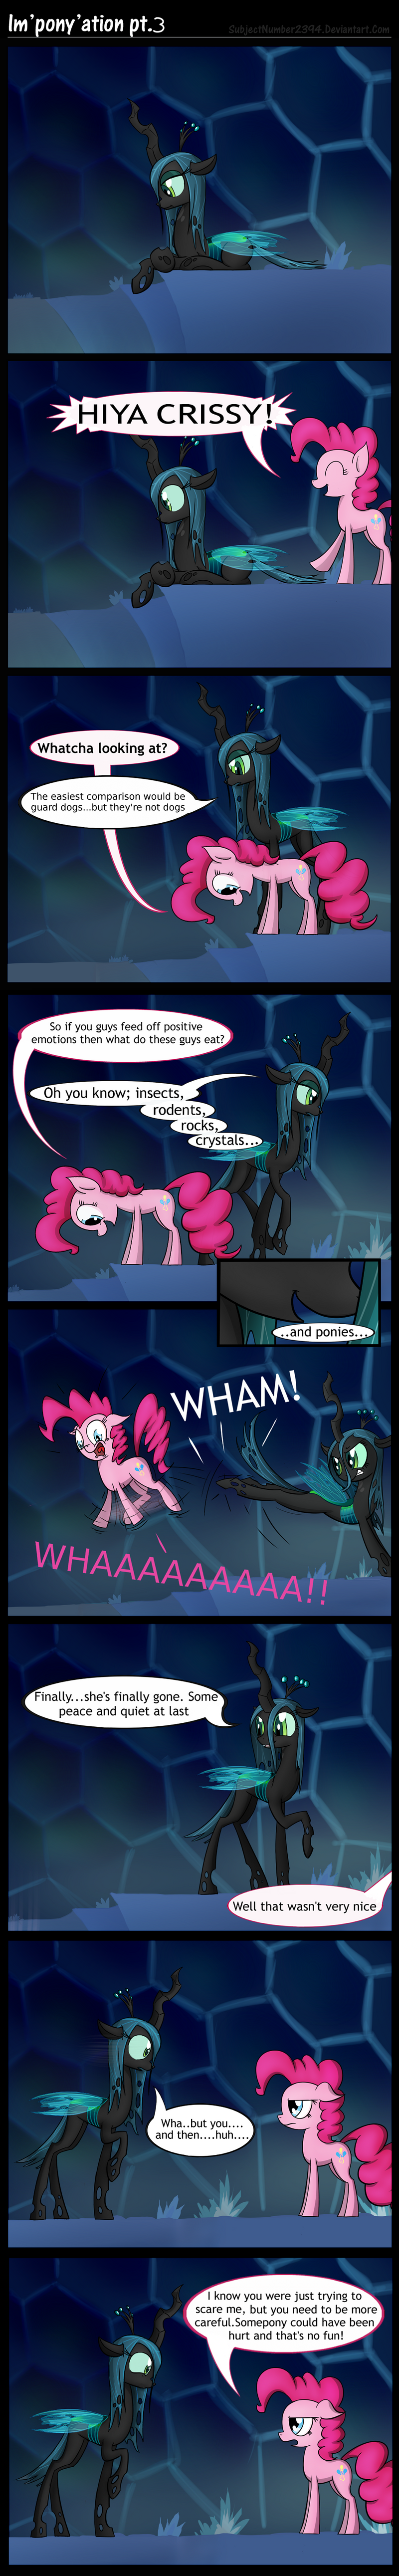 Im'pony'ation pt.3 by SubjectNumber2394